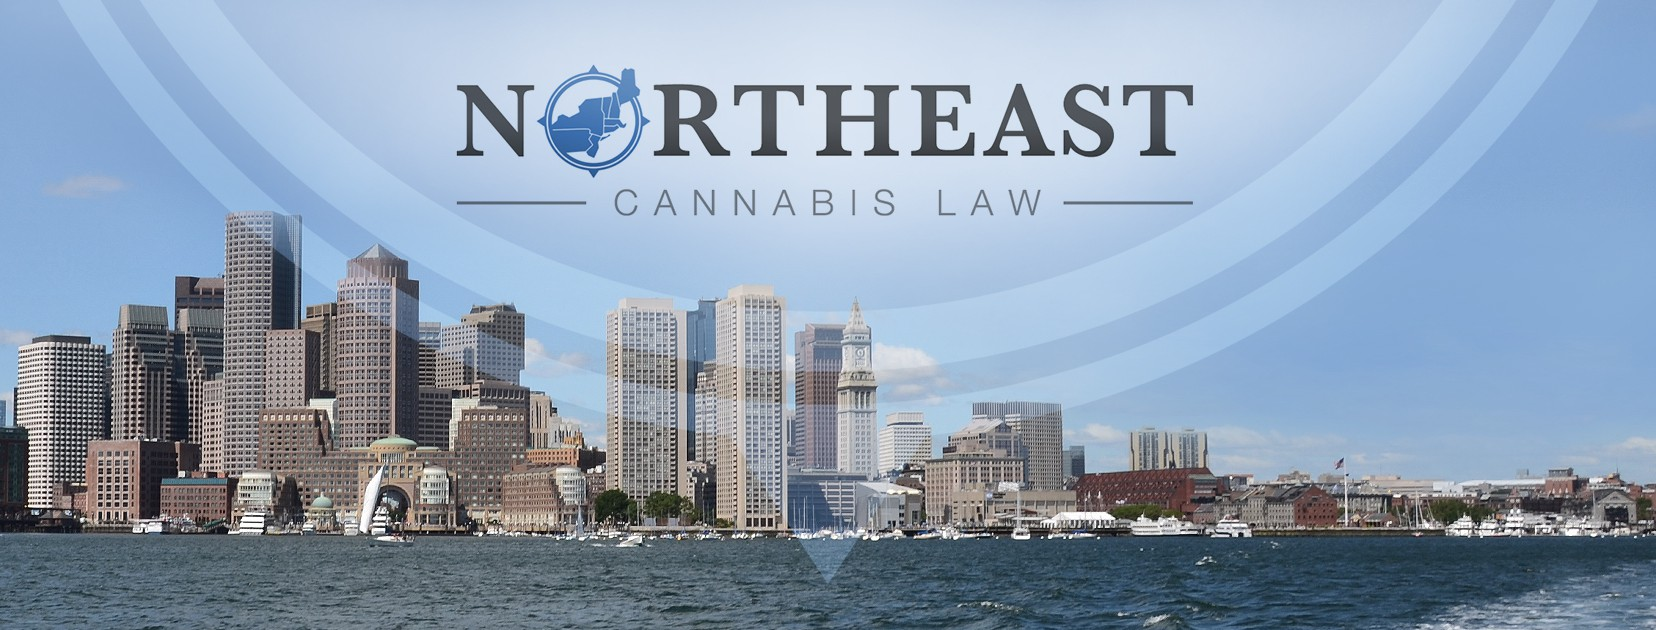 Design professional-looking facebook page for law firm focusing on northeast legal marijuana